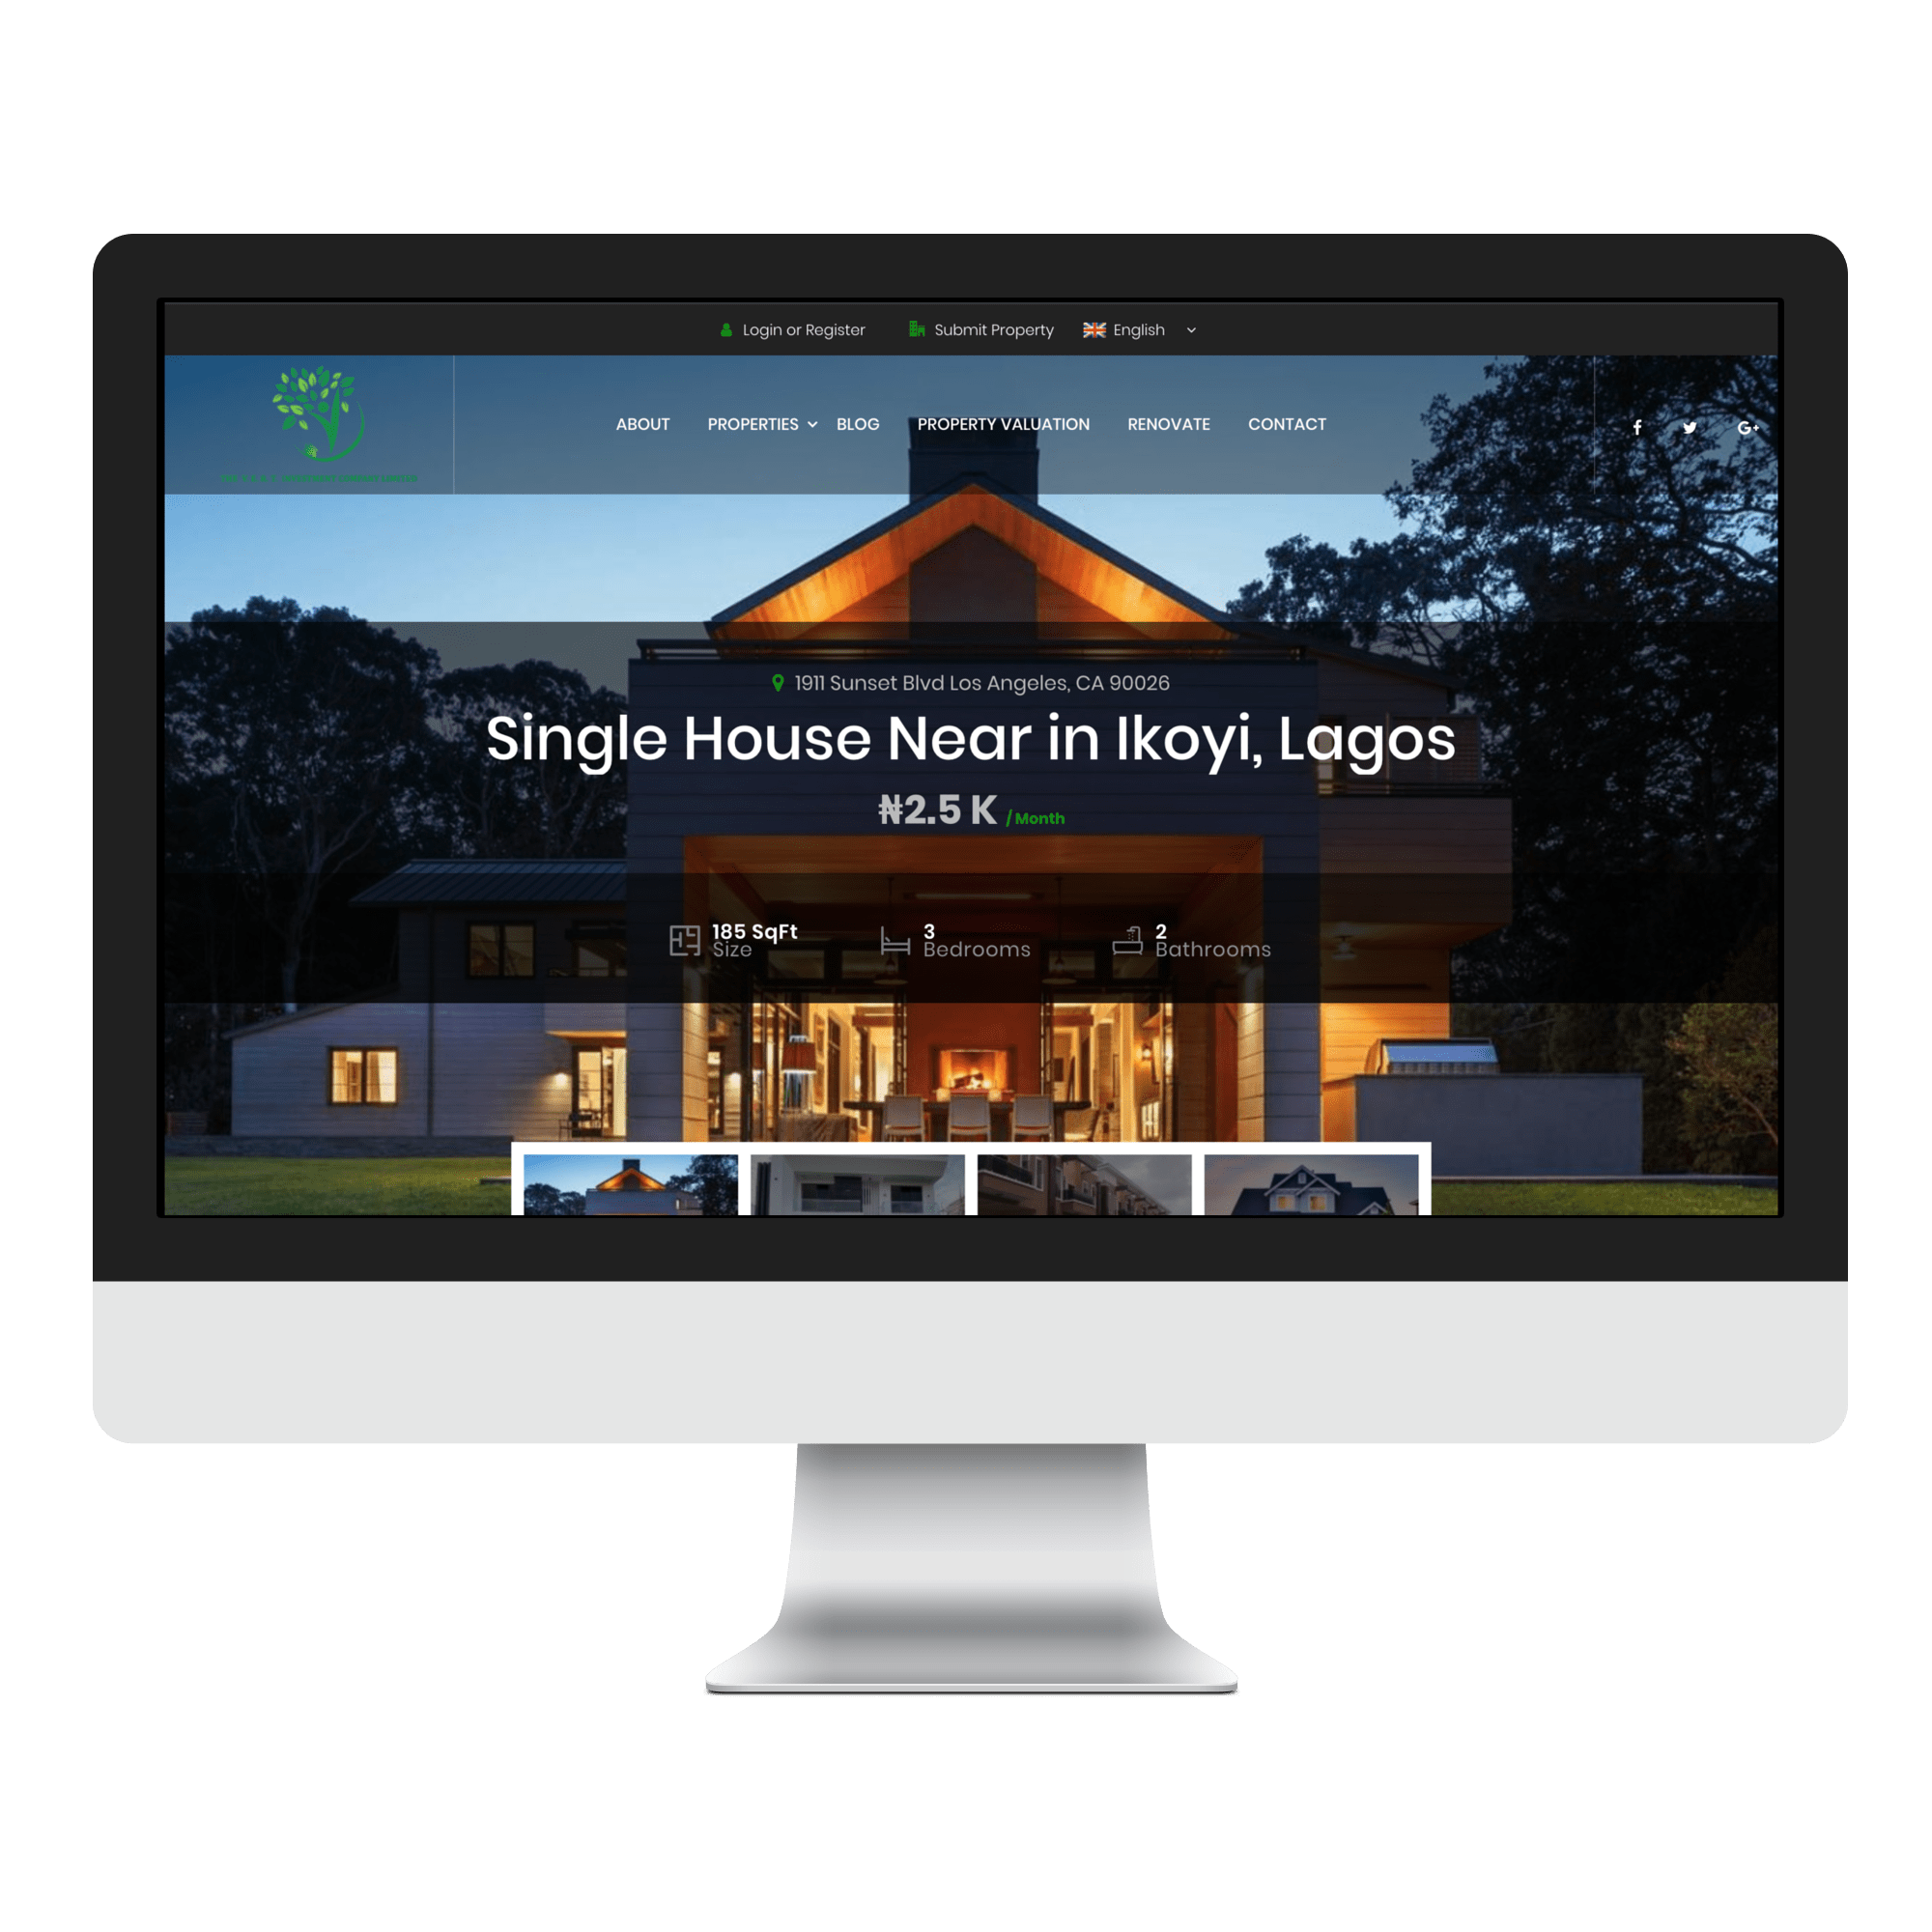 VERT Investments Limited Website Designed by Sigmanox NG